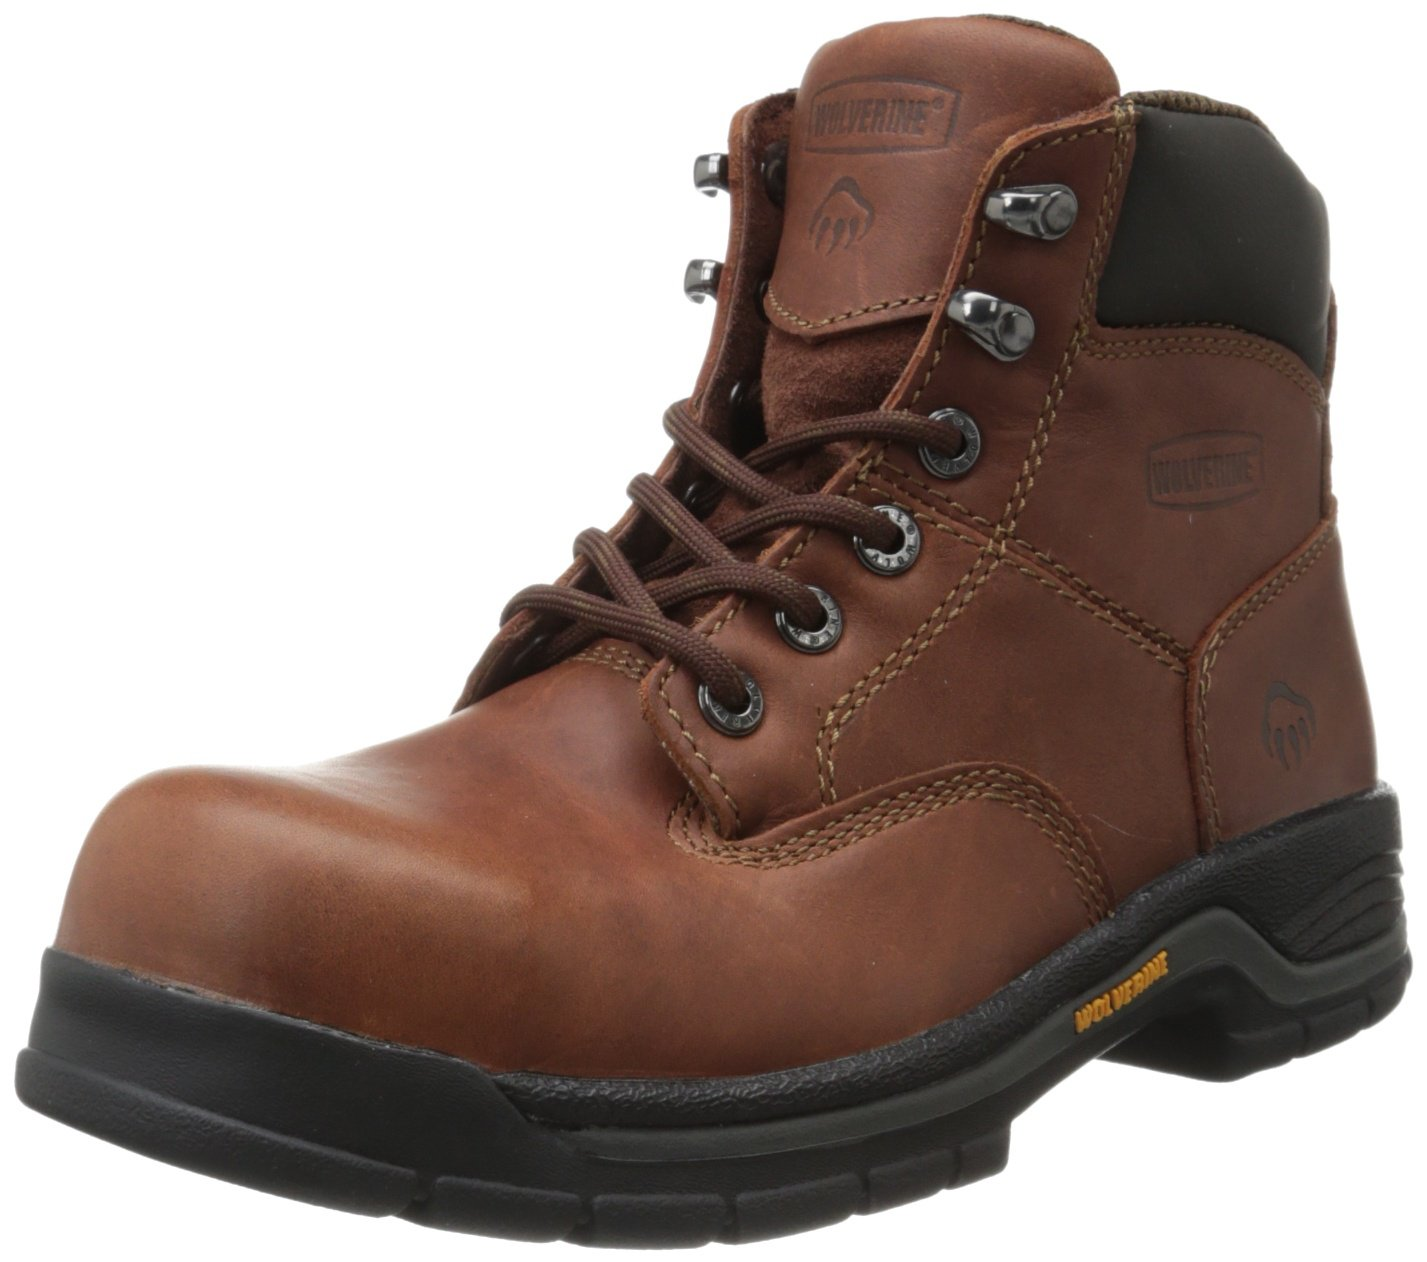 Wolverine Women's W04675 Harrison Safety Toe Work Boot, Brown, 8.5 M US